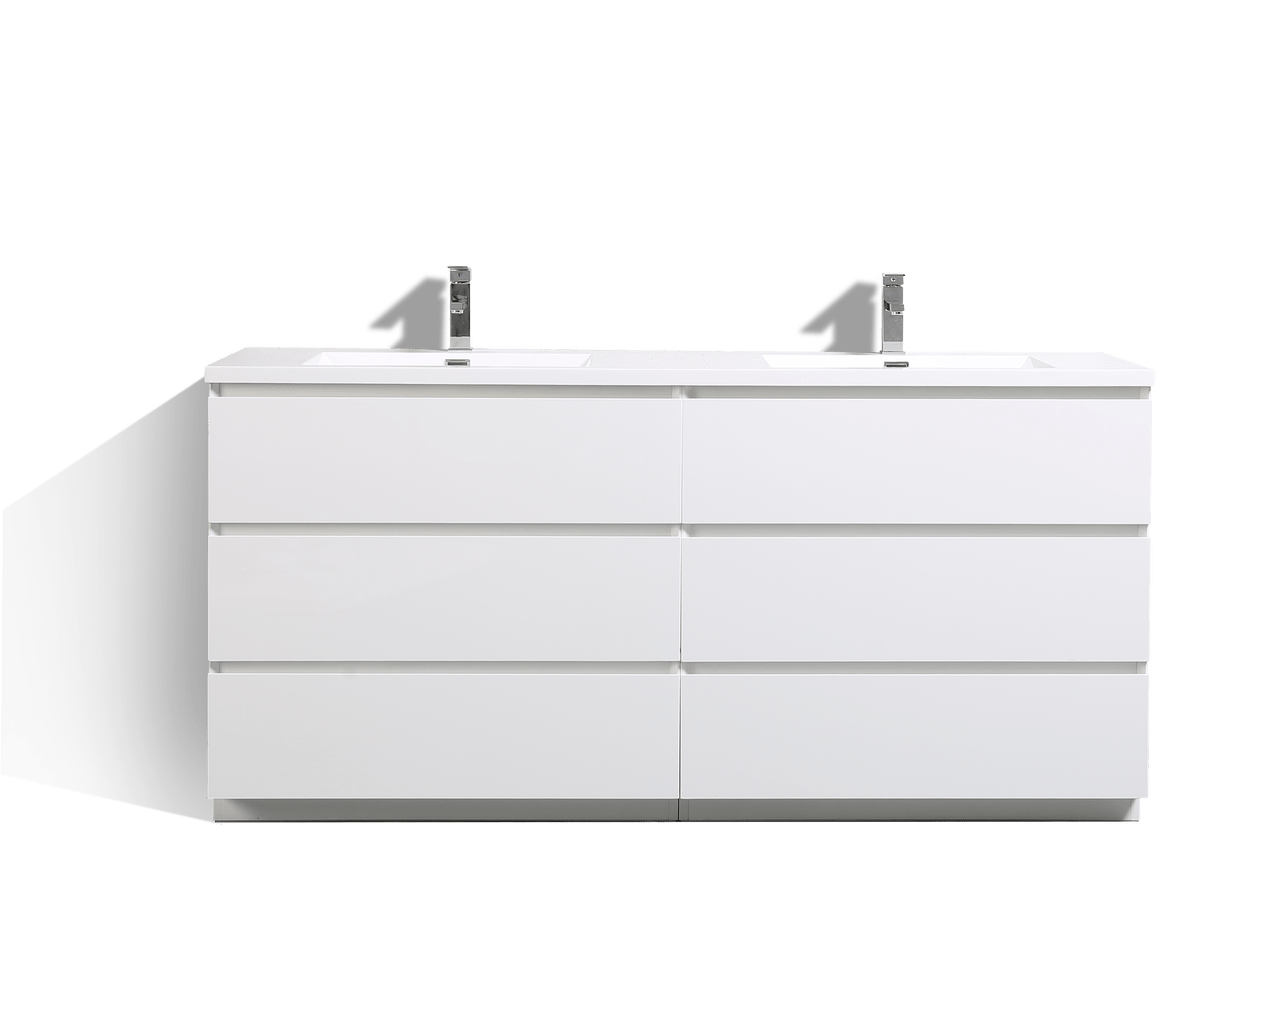 Bathroom Vanity 72 Double Sink Moa 72 Double Sink Gloss White Modern Bathroom Vanity W 6 Drawers And Acrylic Sink